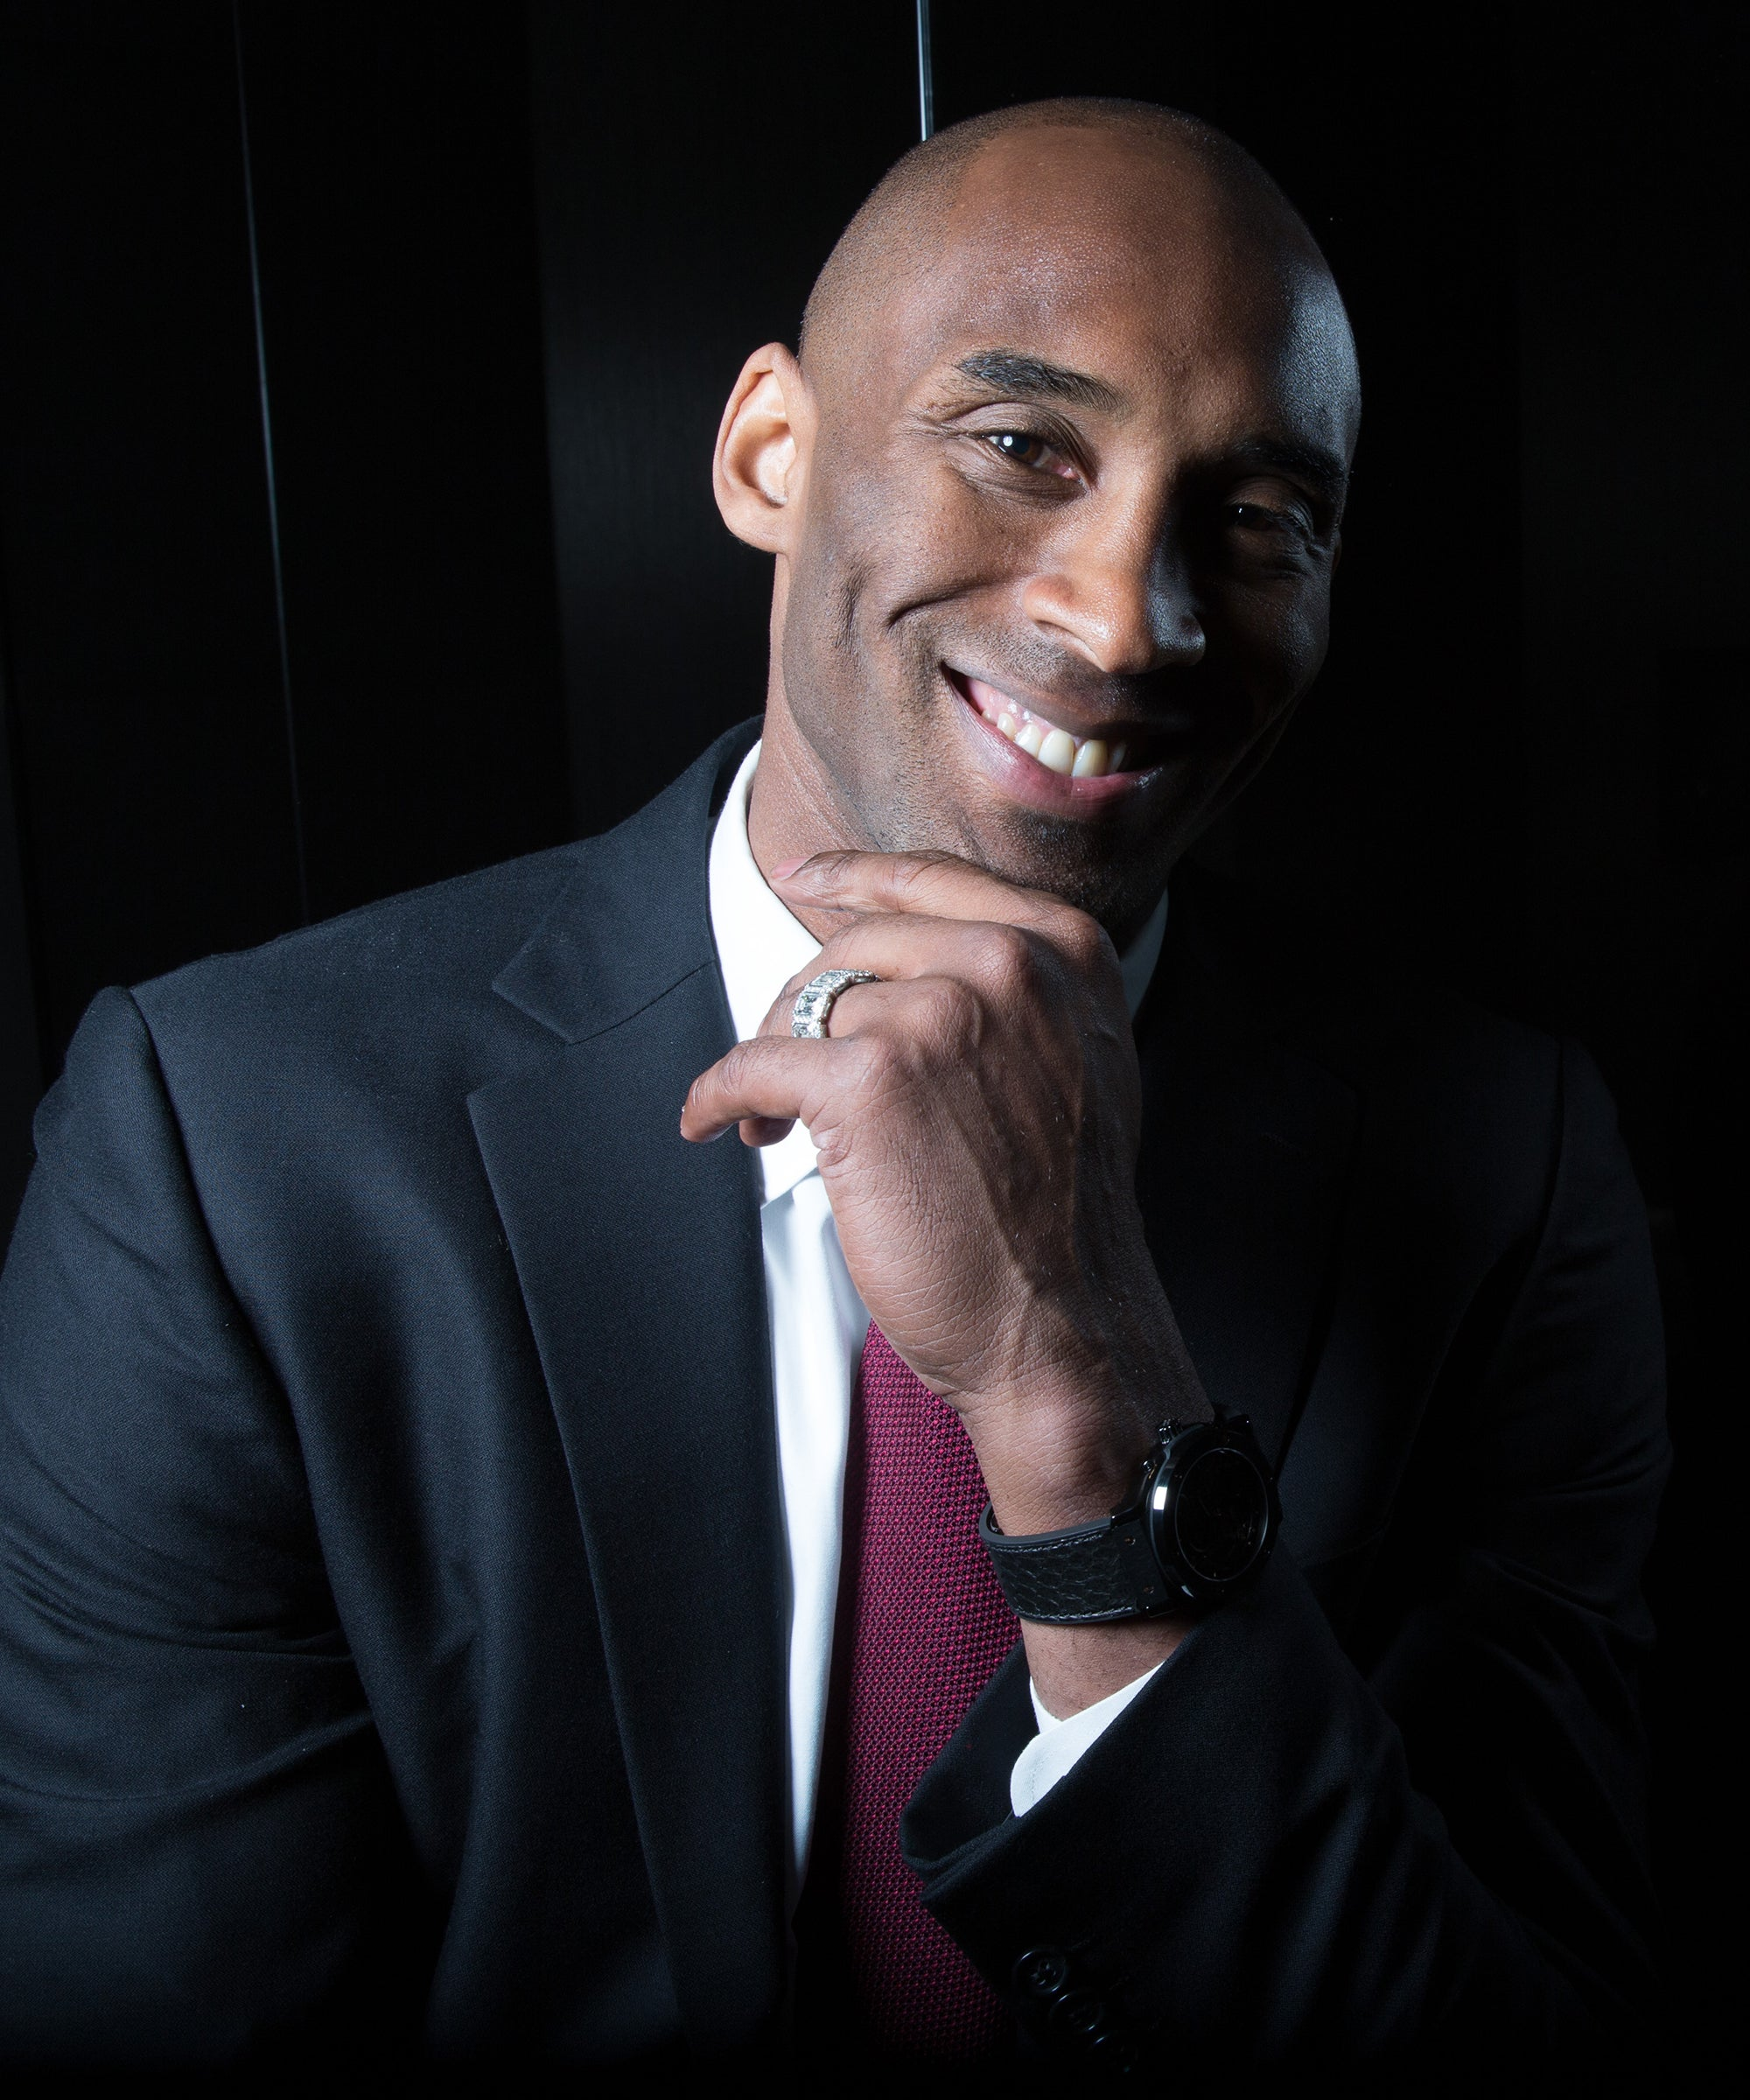 Kobe Bryant Will Be Posthumously Inducted Into The Hall Of Fame